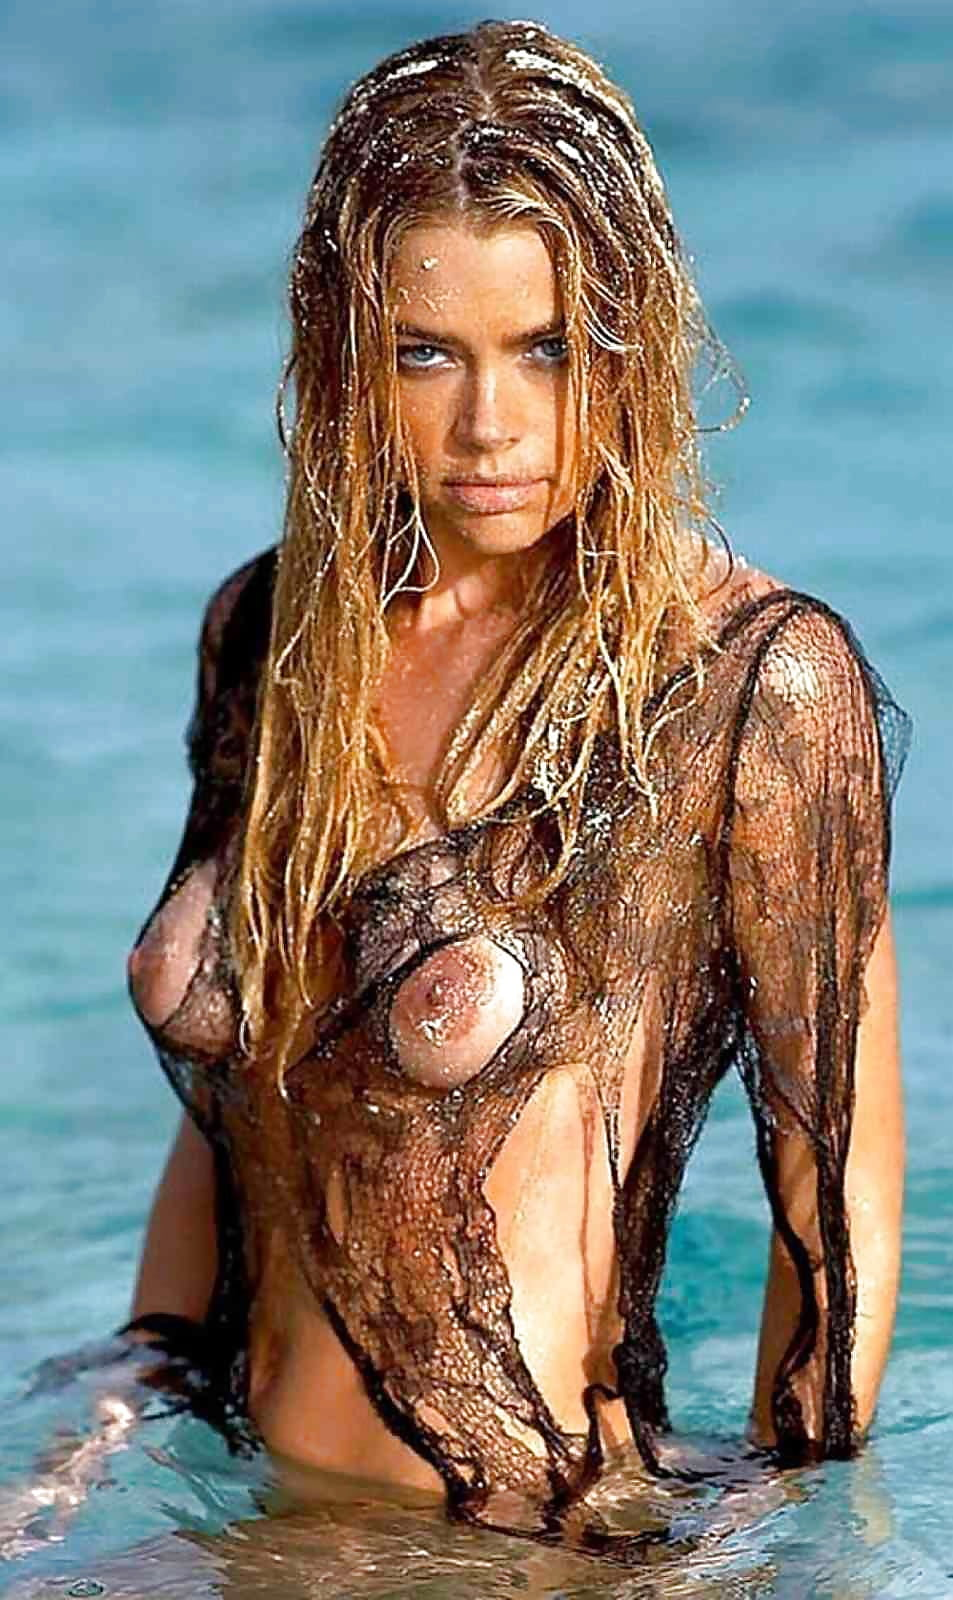 Nude pics denise richards